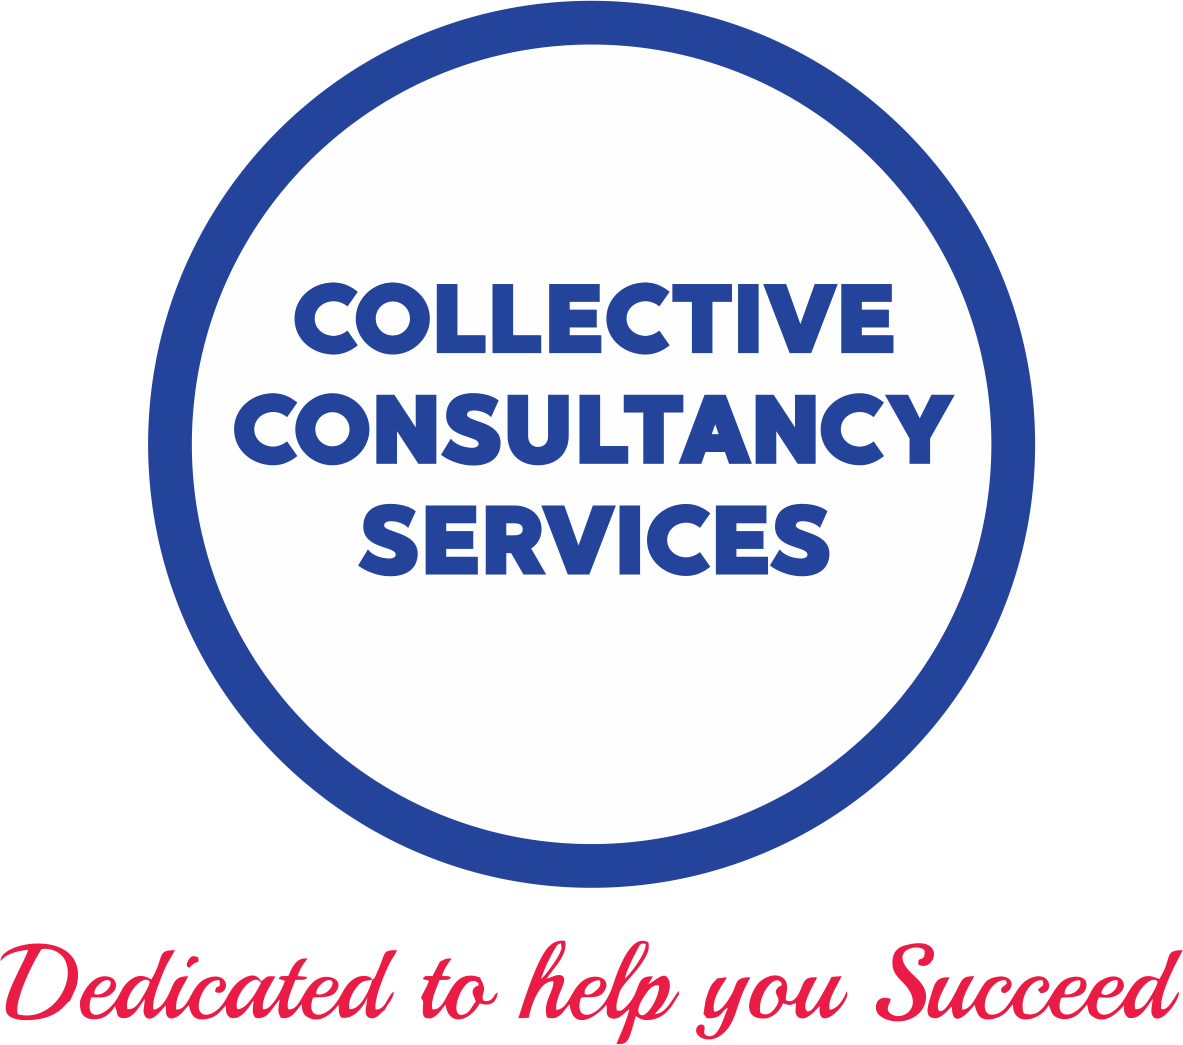 about collective consultancy services about collective consultancy services